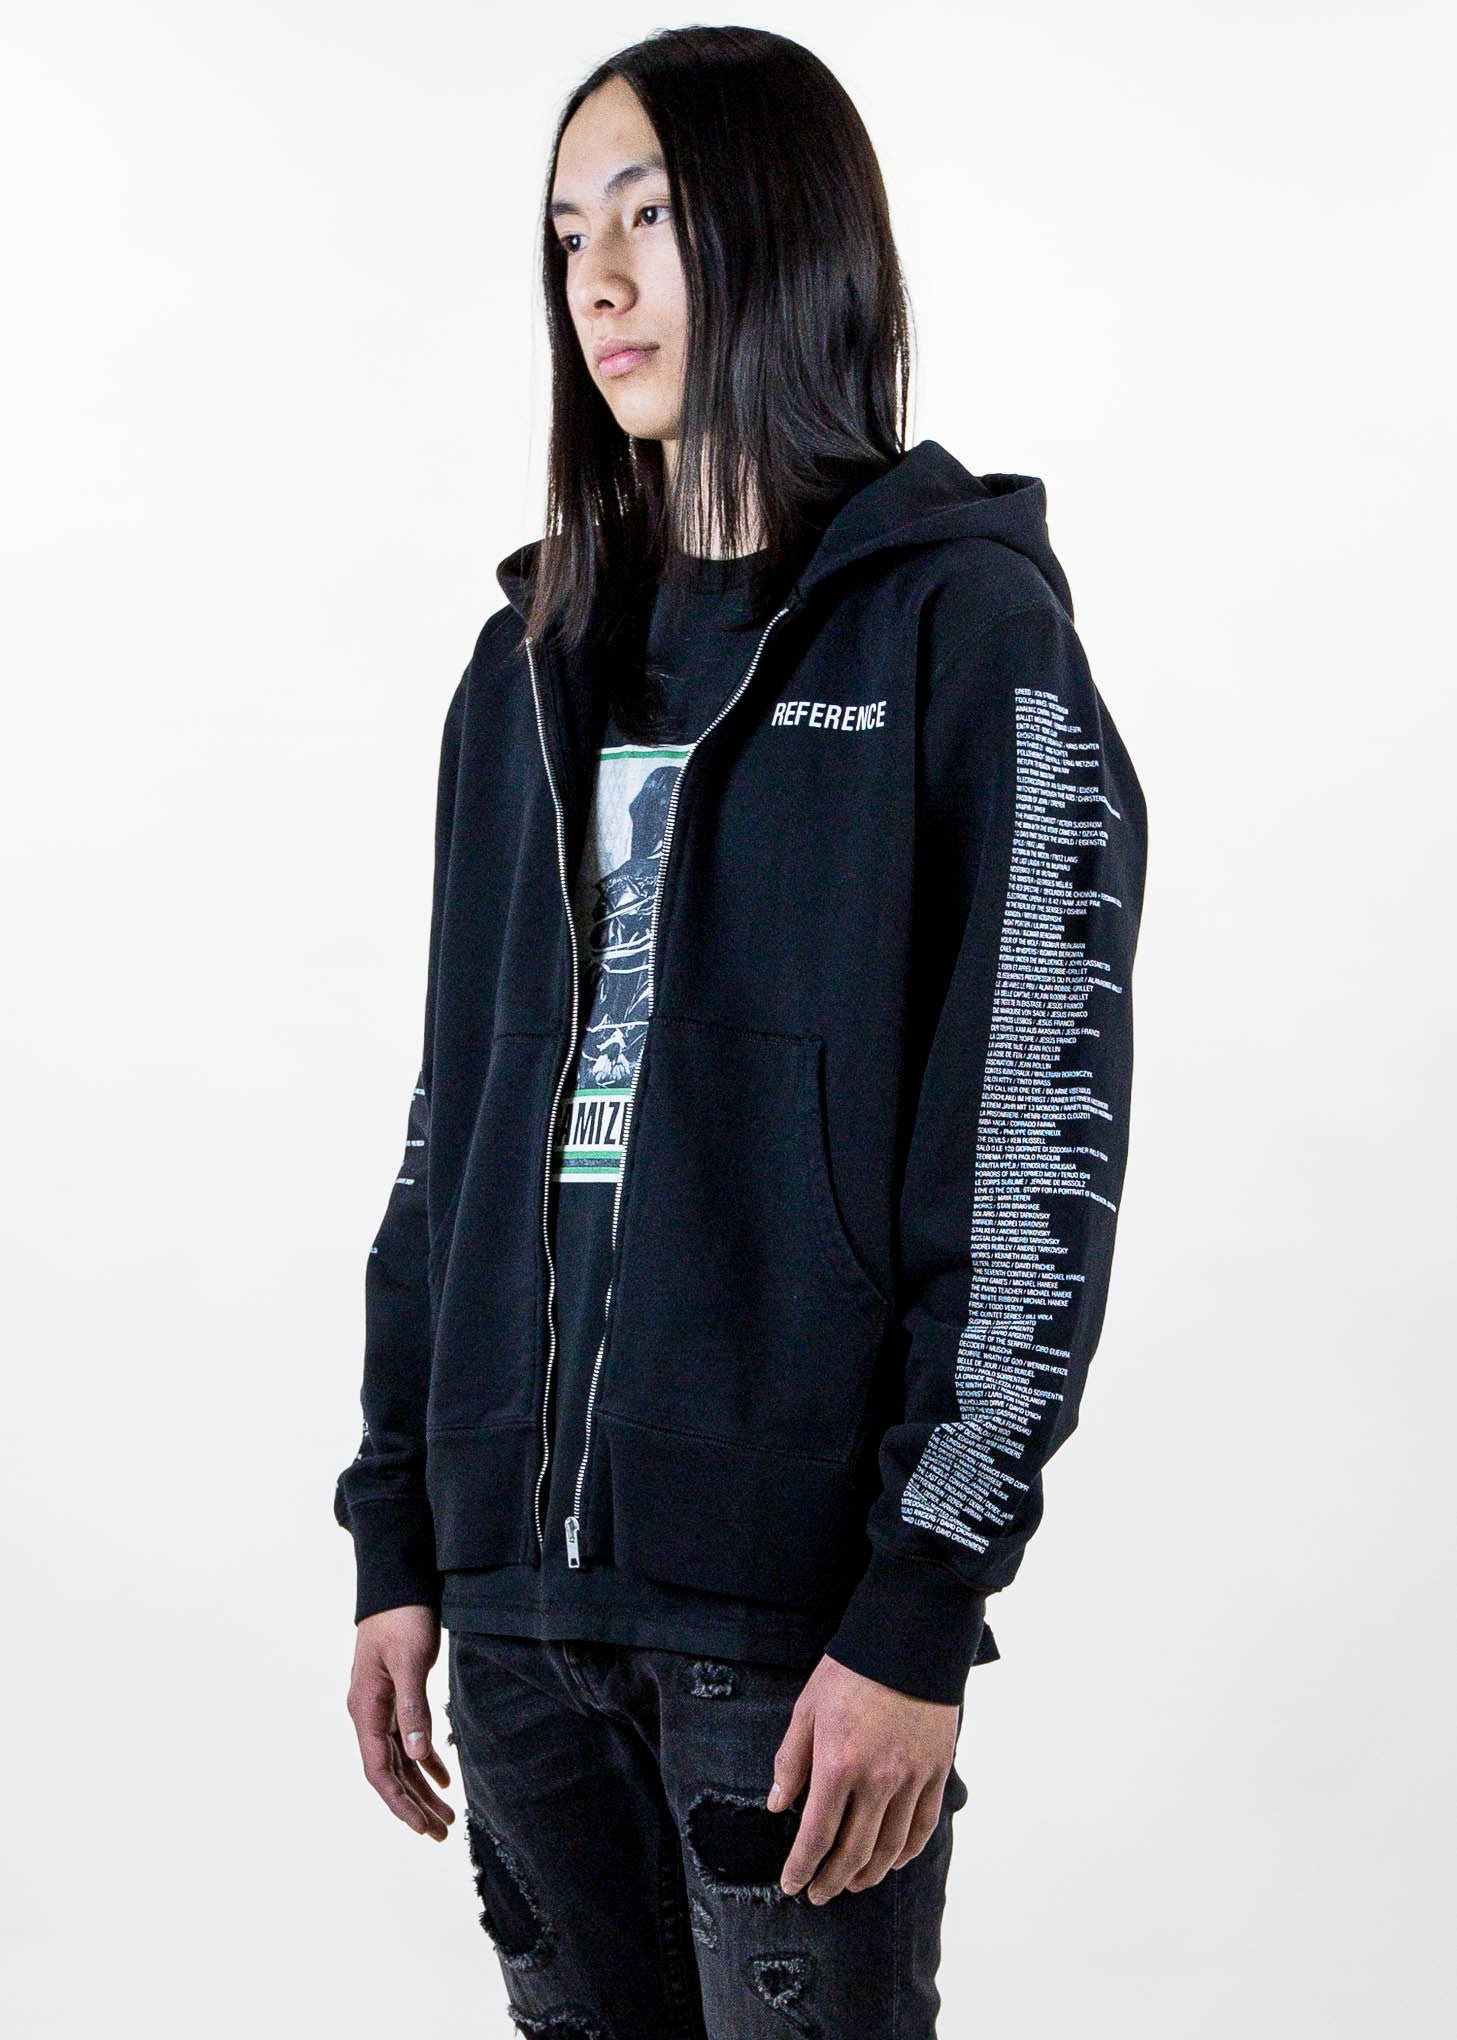 Reference Hoodie